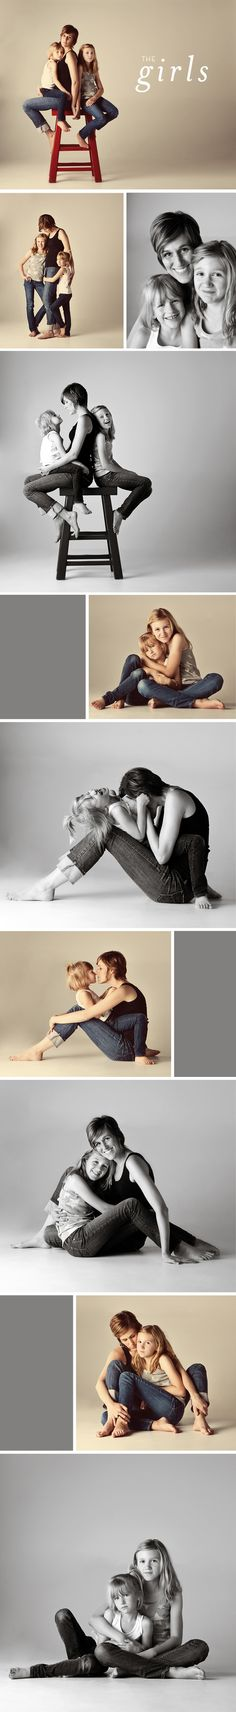 Photo ideas for mom and daughters